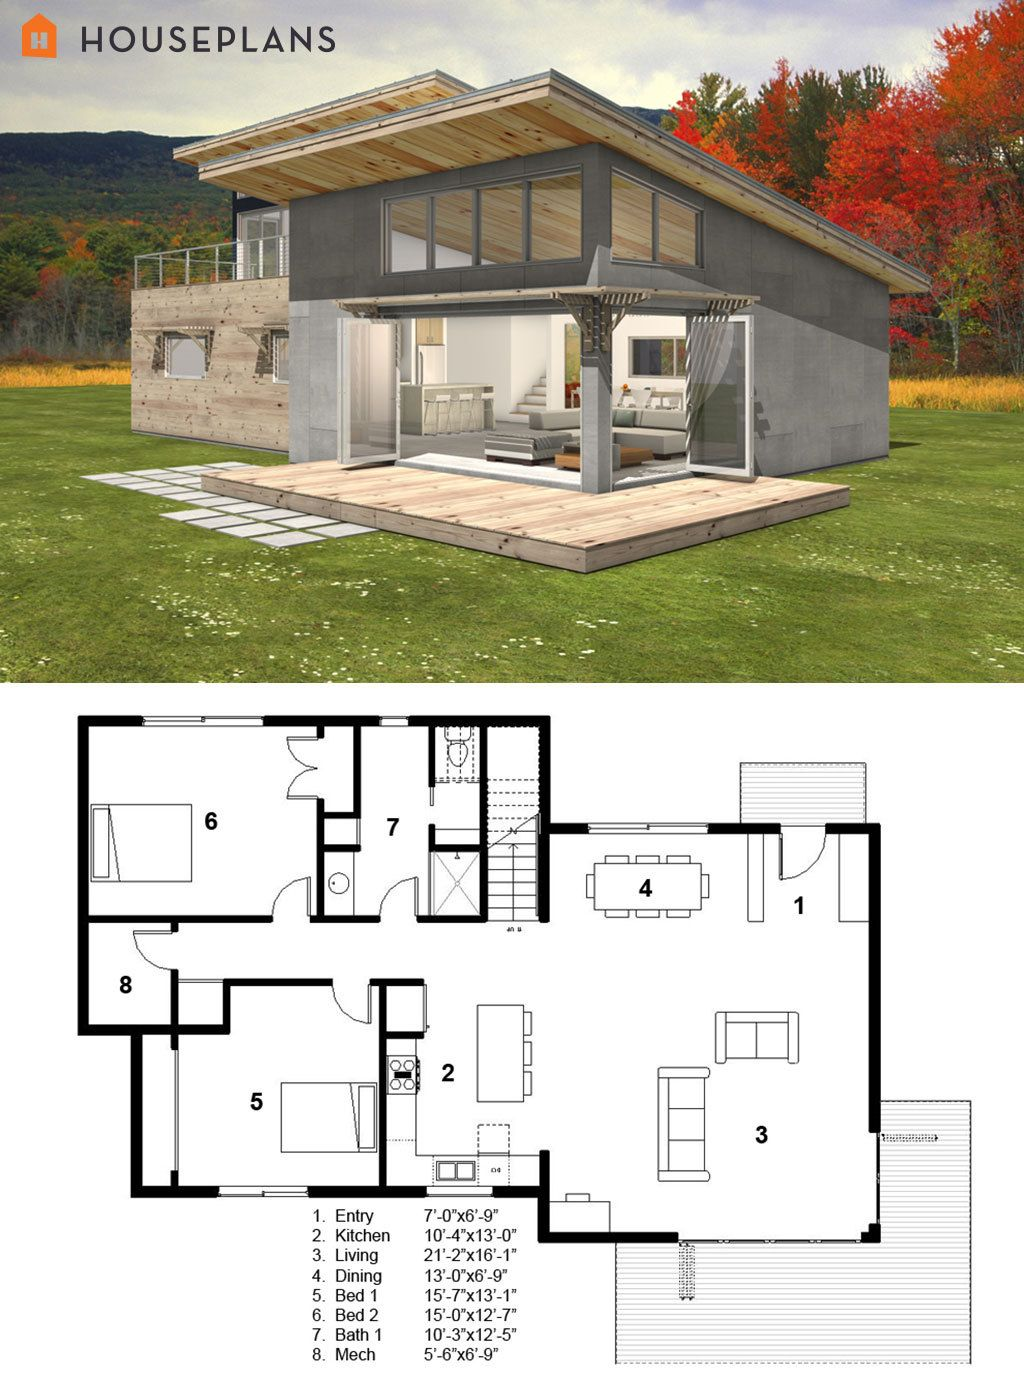 Modern style house plan 3 beds baths 2115 sq ft for Modern house blueprints